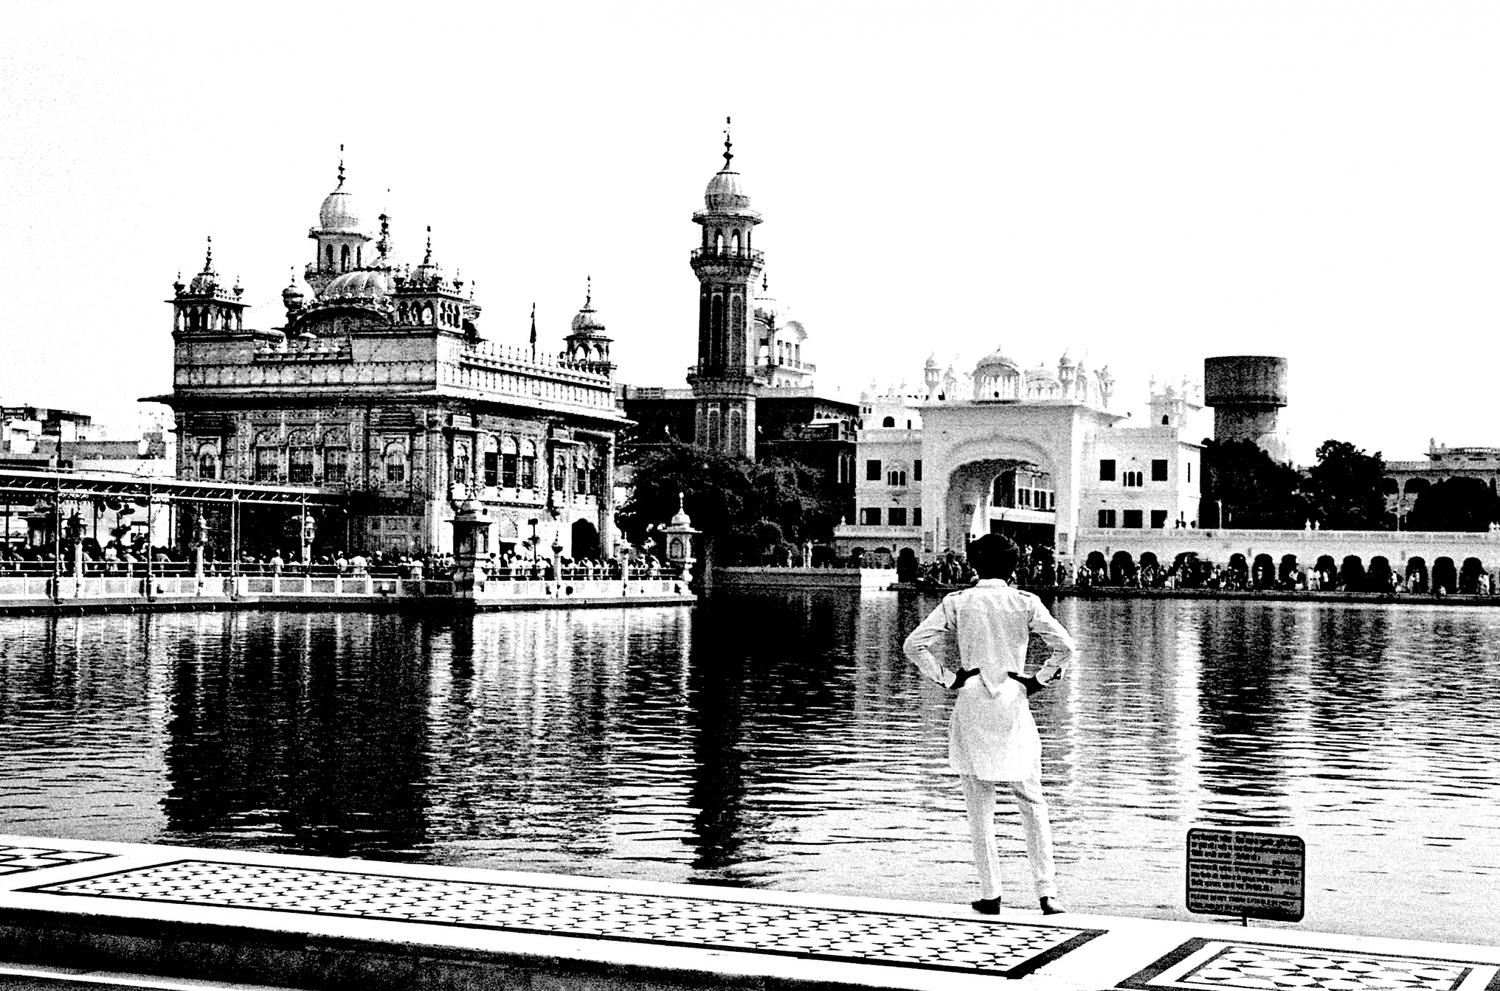 Young Boy at the Golden Temple, Amritsar 2016   Edition 2 of 5